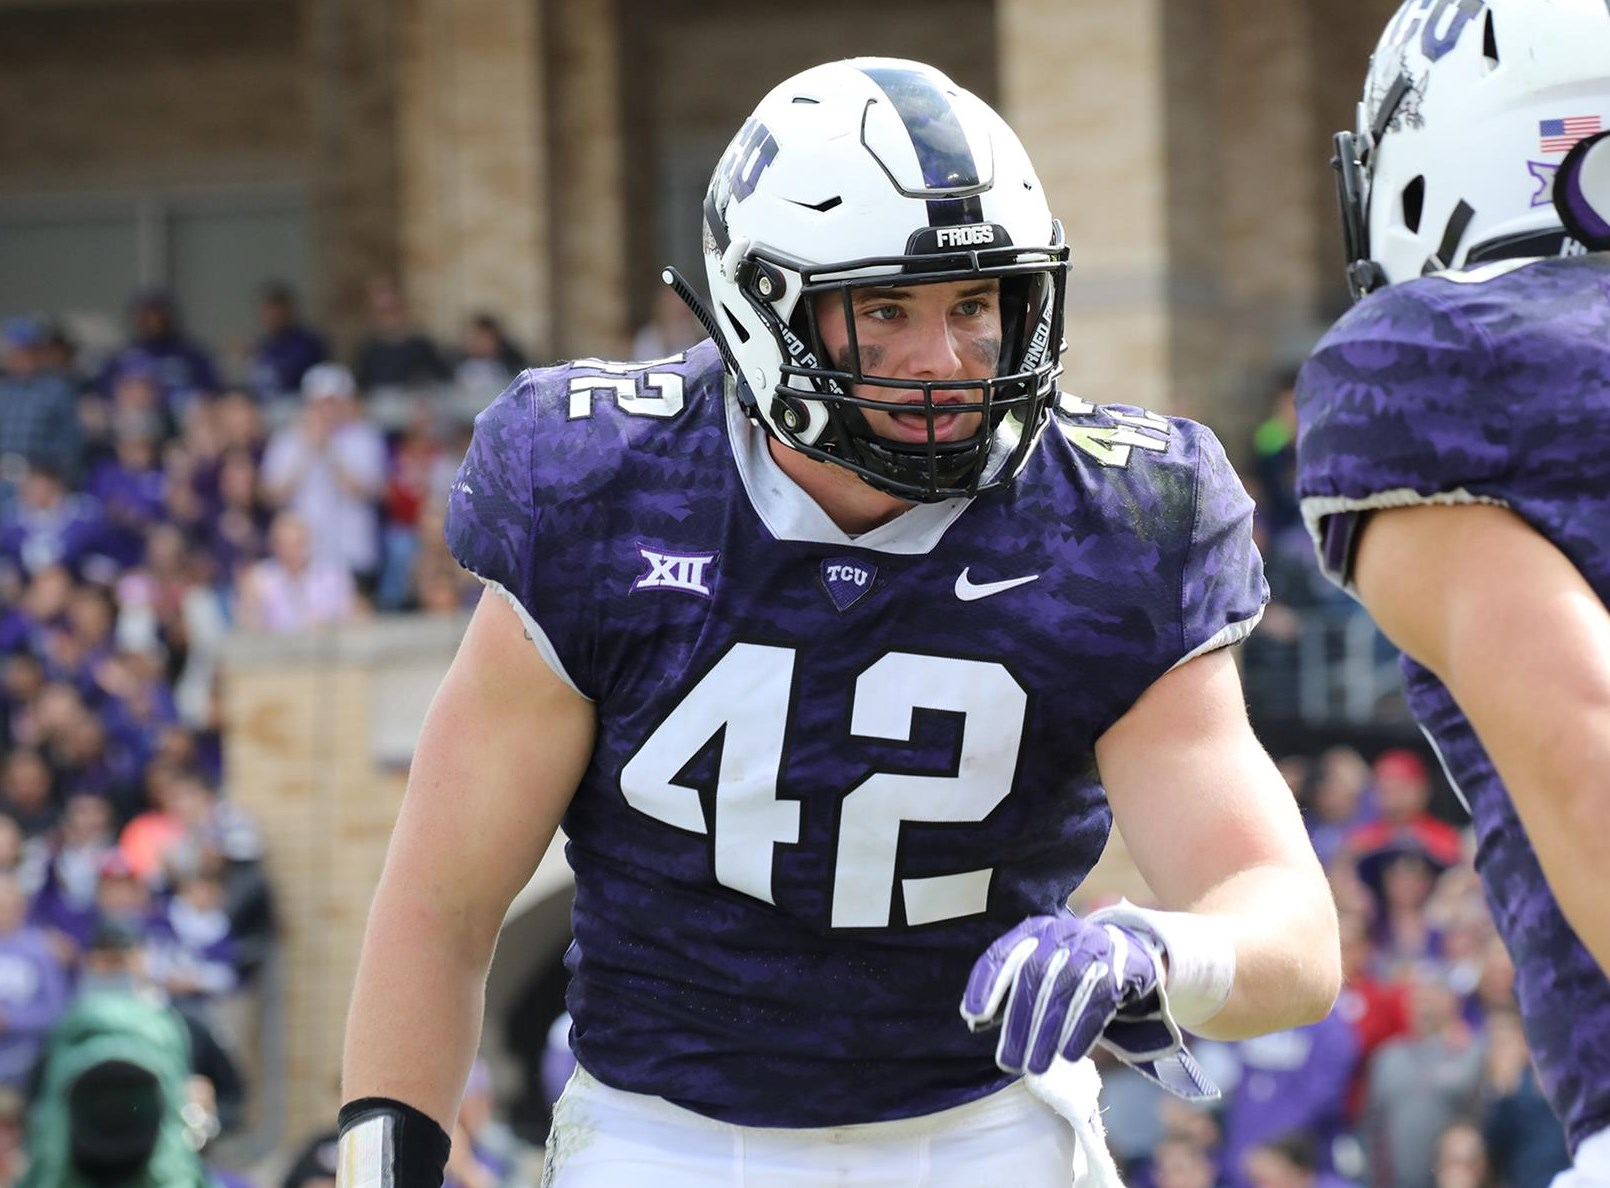 BREAKING: Green Bay Packers select Ty Summers, ILB, TCU in Round 7